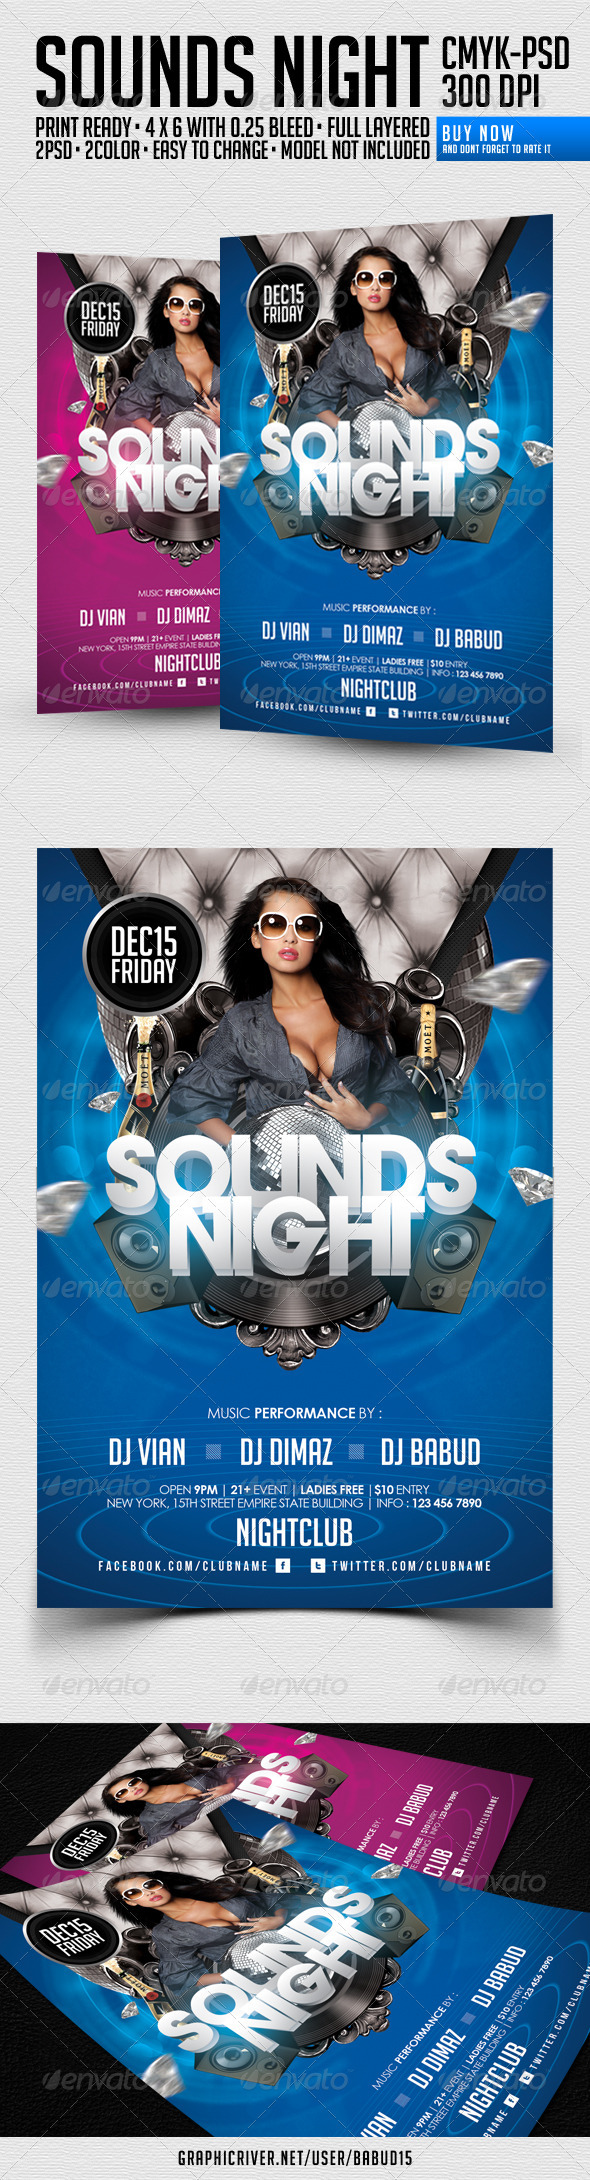 Sounds Night Flyer Template - Events Flyers